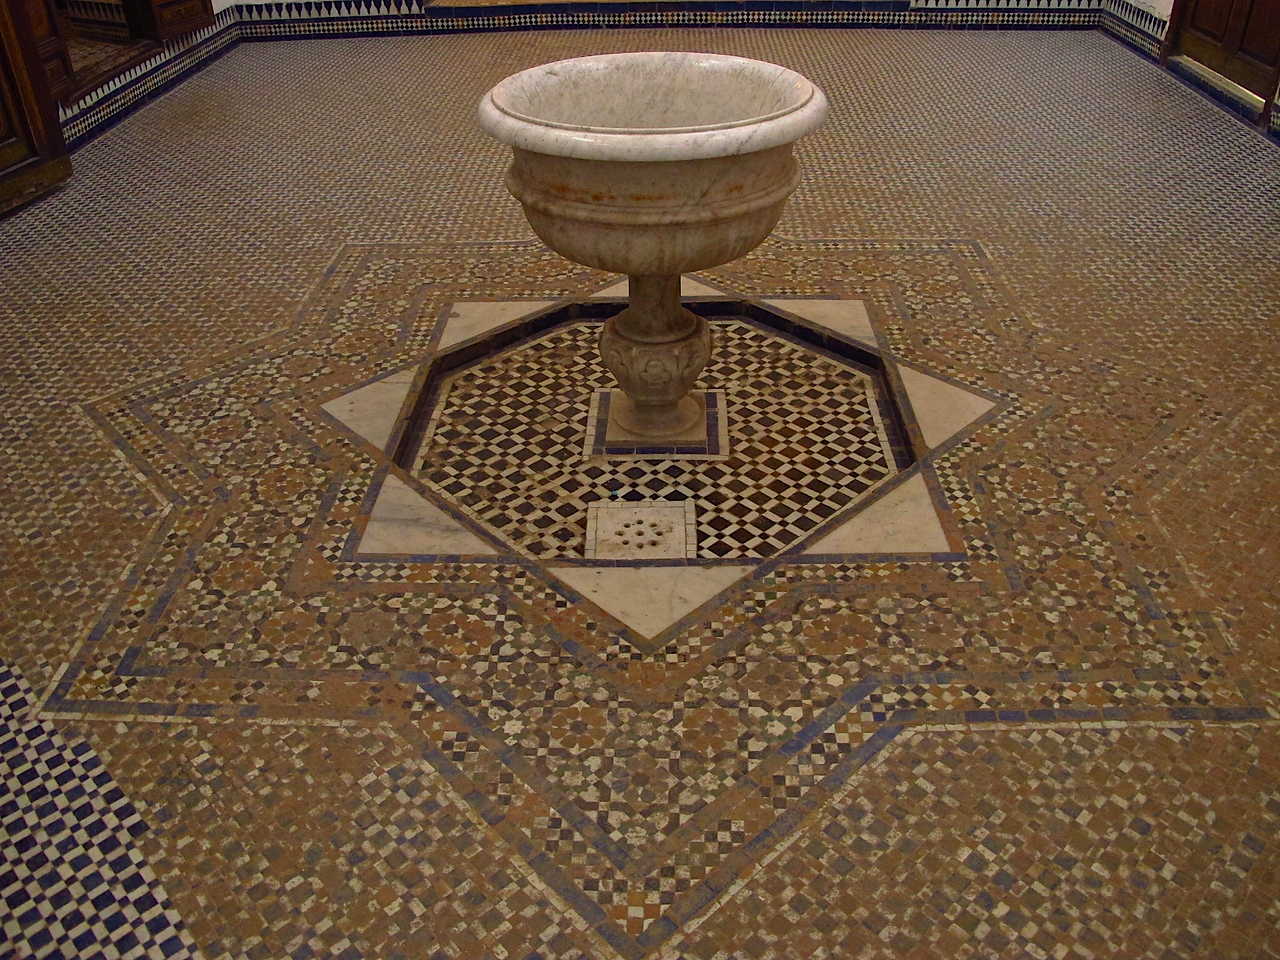 There are 160 different rooms in the palace which are sprawled out in an open, rambling fashion. The reception halls and private quarters are lavishly decorated and there are several tiled courts – often complete with water features – that serve as open air areas where the women could have washed and rested themselves.